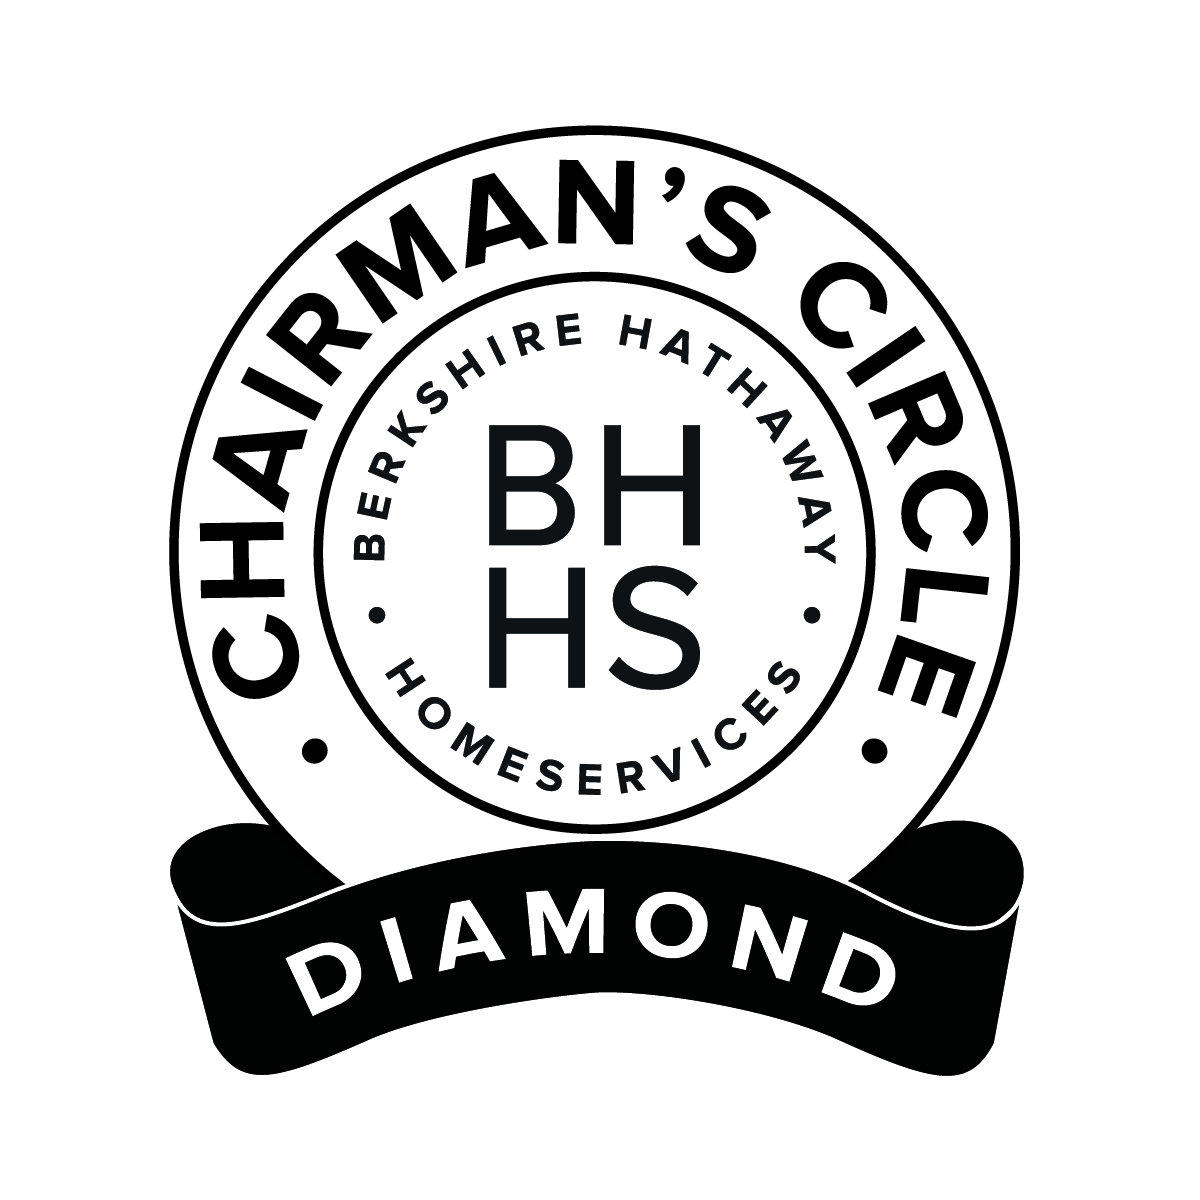 Chairman's Circle Diamond Award